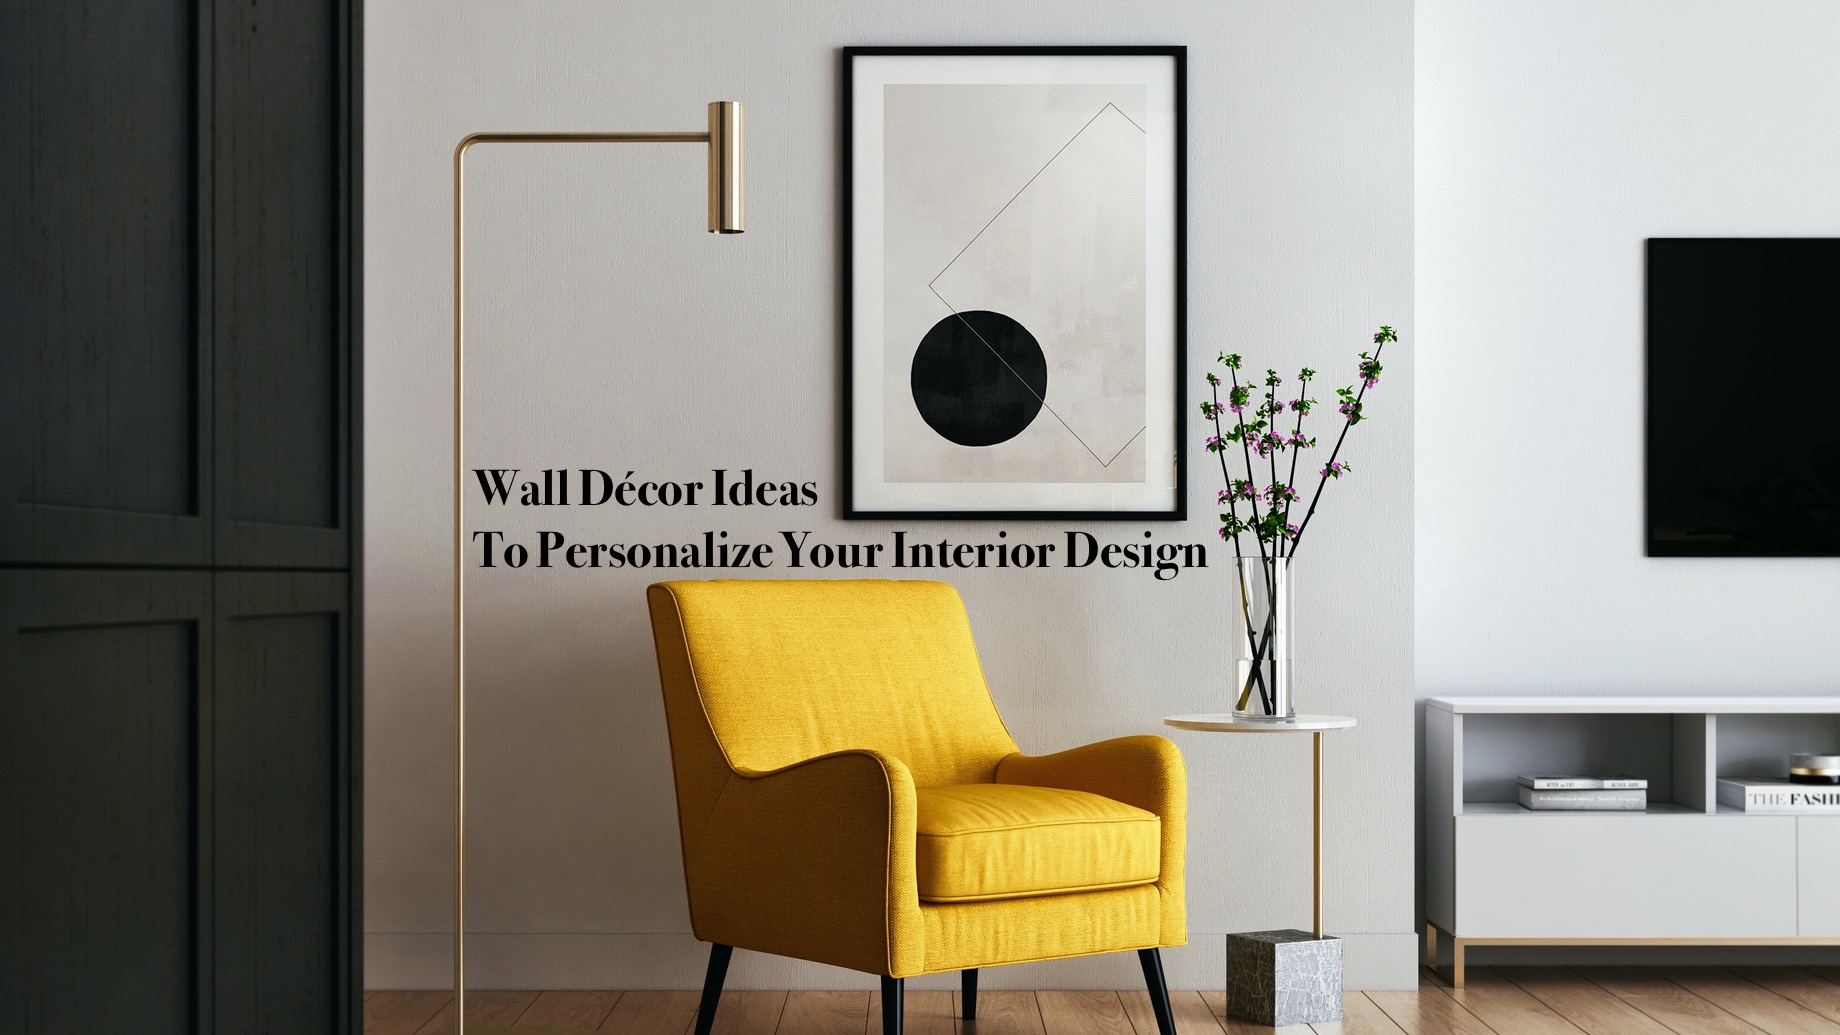 Wall Décor Ideas To Personalize Your Interior Design